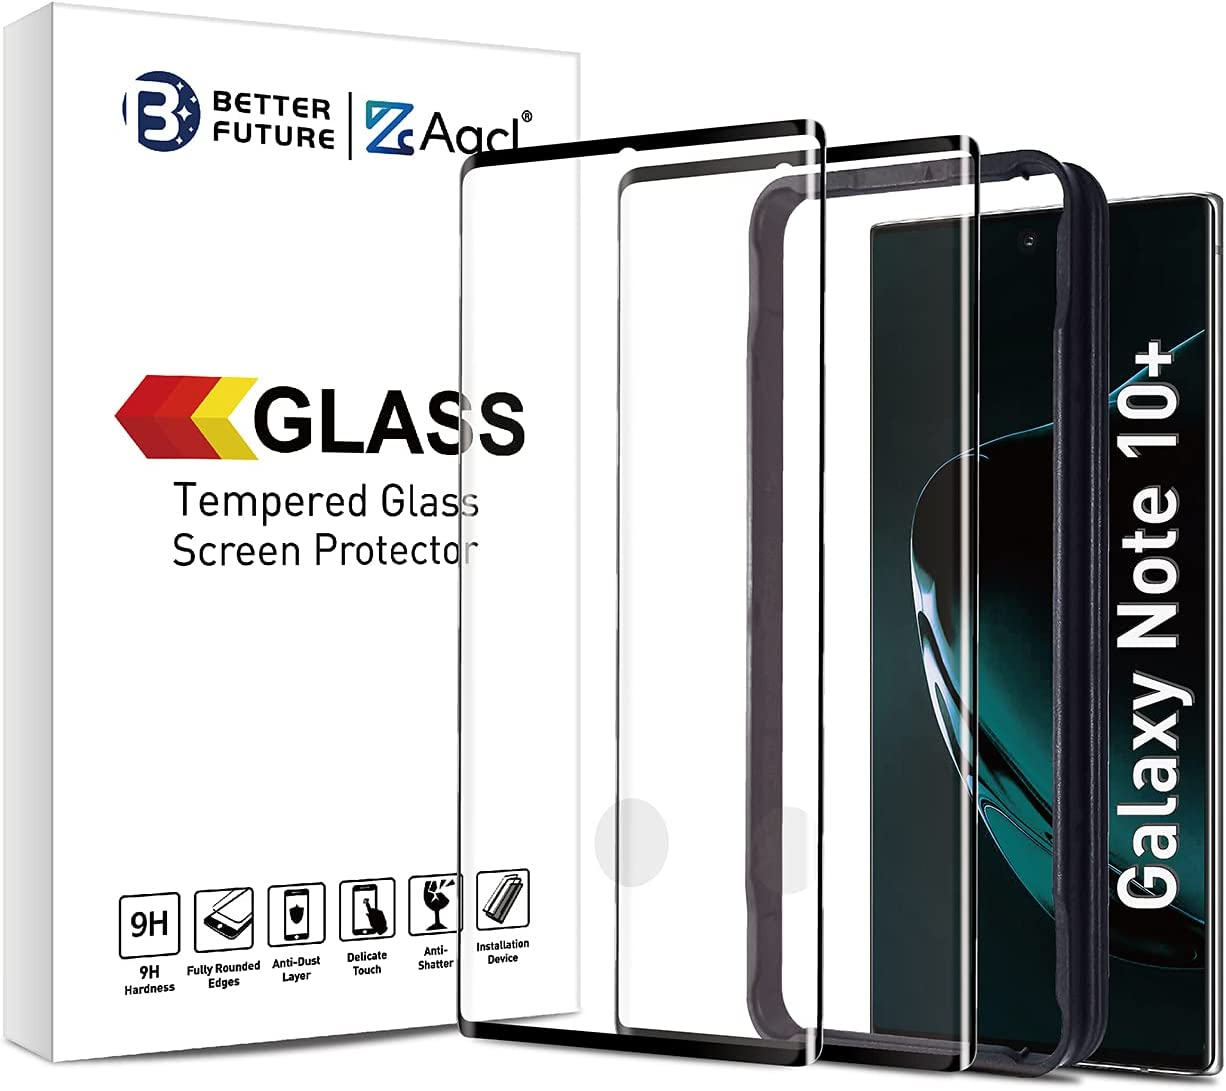 Screen Protector for Samsung Galaxy Note 10 Plus,6.8 Inch,Curved Tempered Glass,Compatible with Ultrasonic Fingerprint Scanner,2 Pack